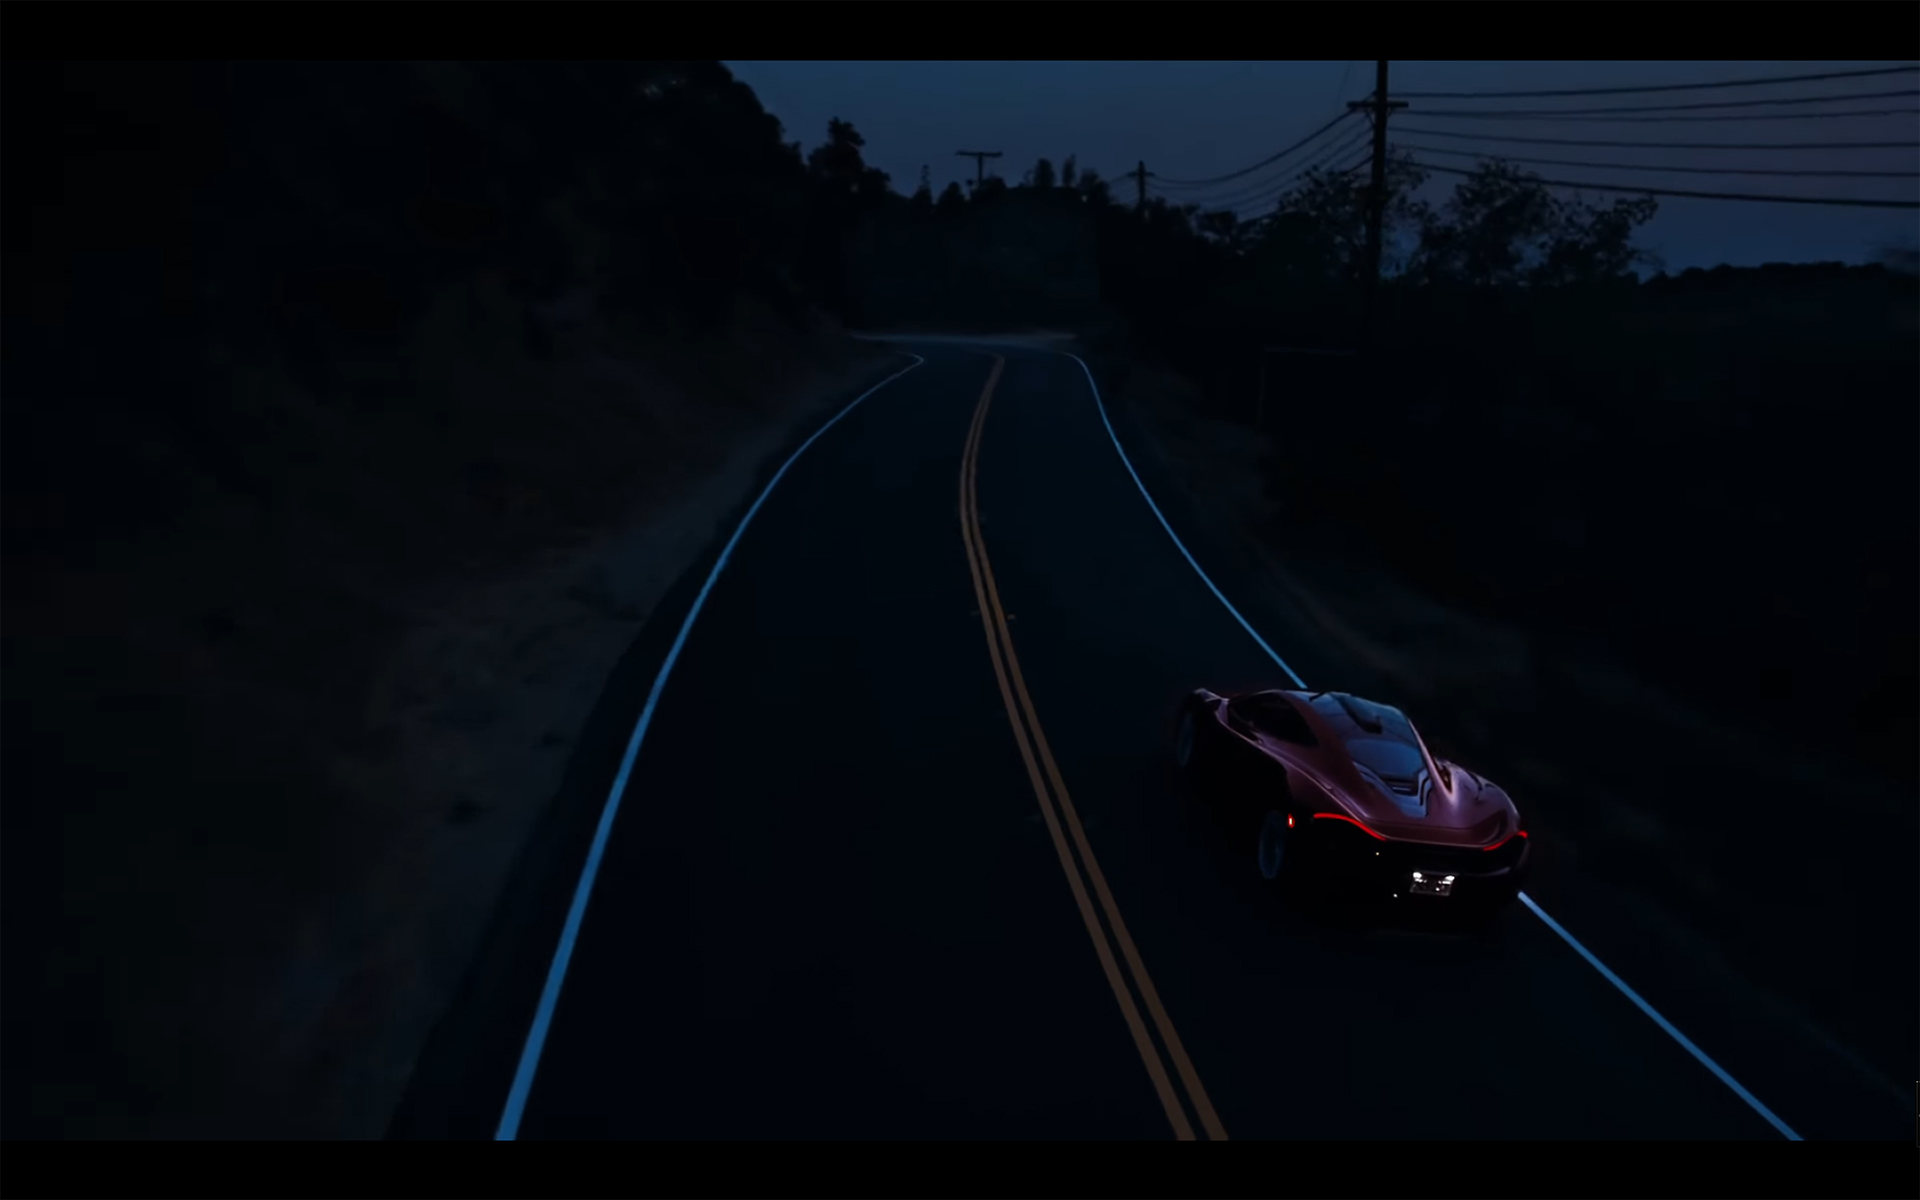 Starboy - The Weeknd - McLaren P1 - to start go up hills via the twisties roads of Mulholland Drive